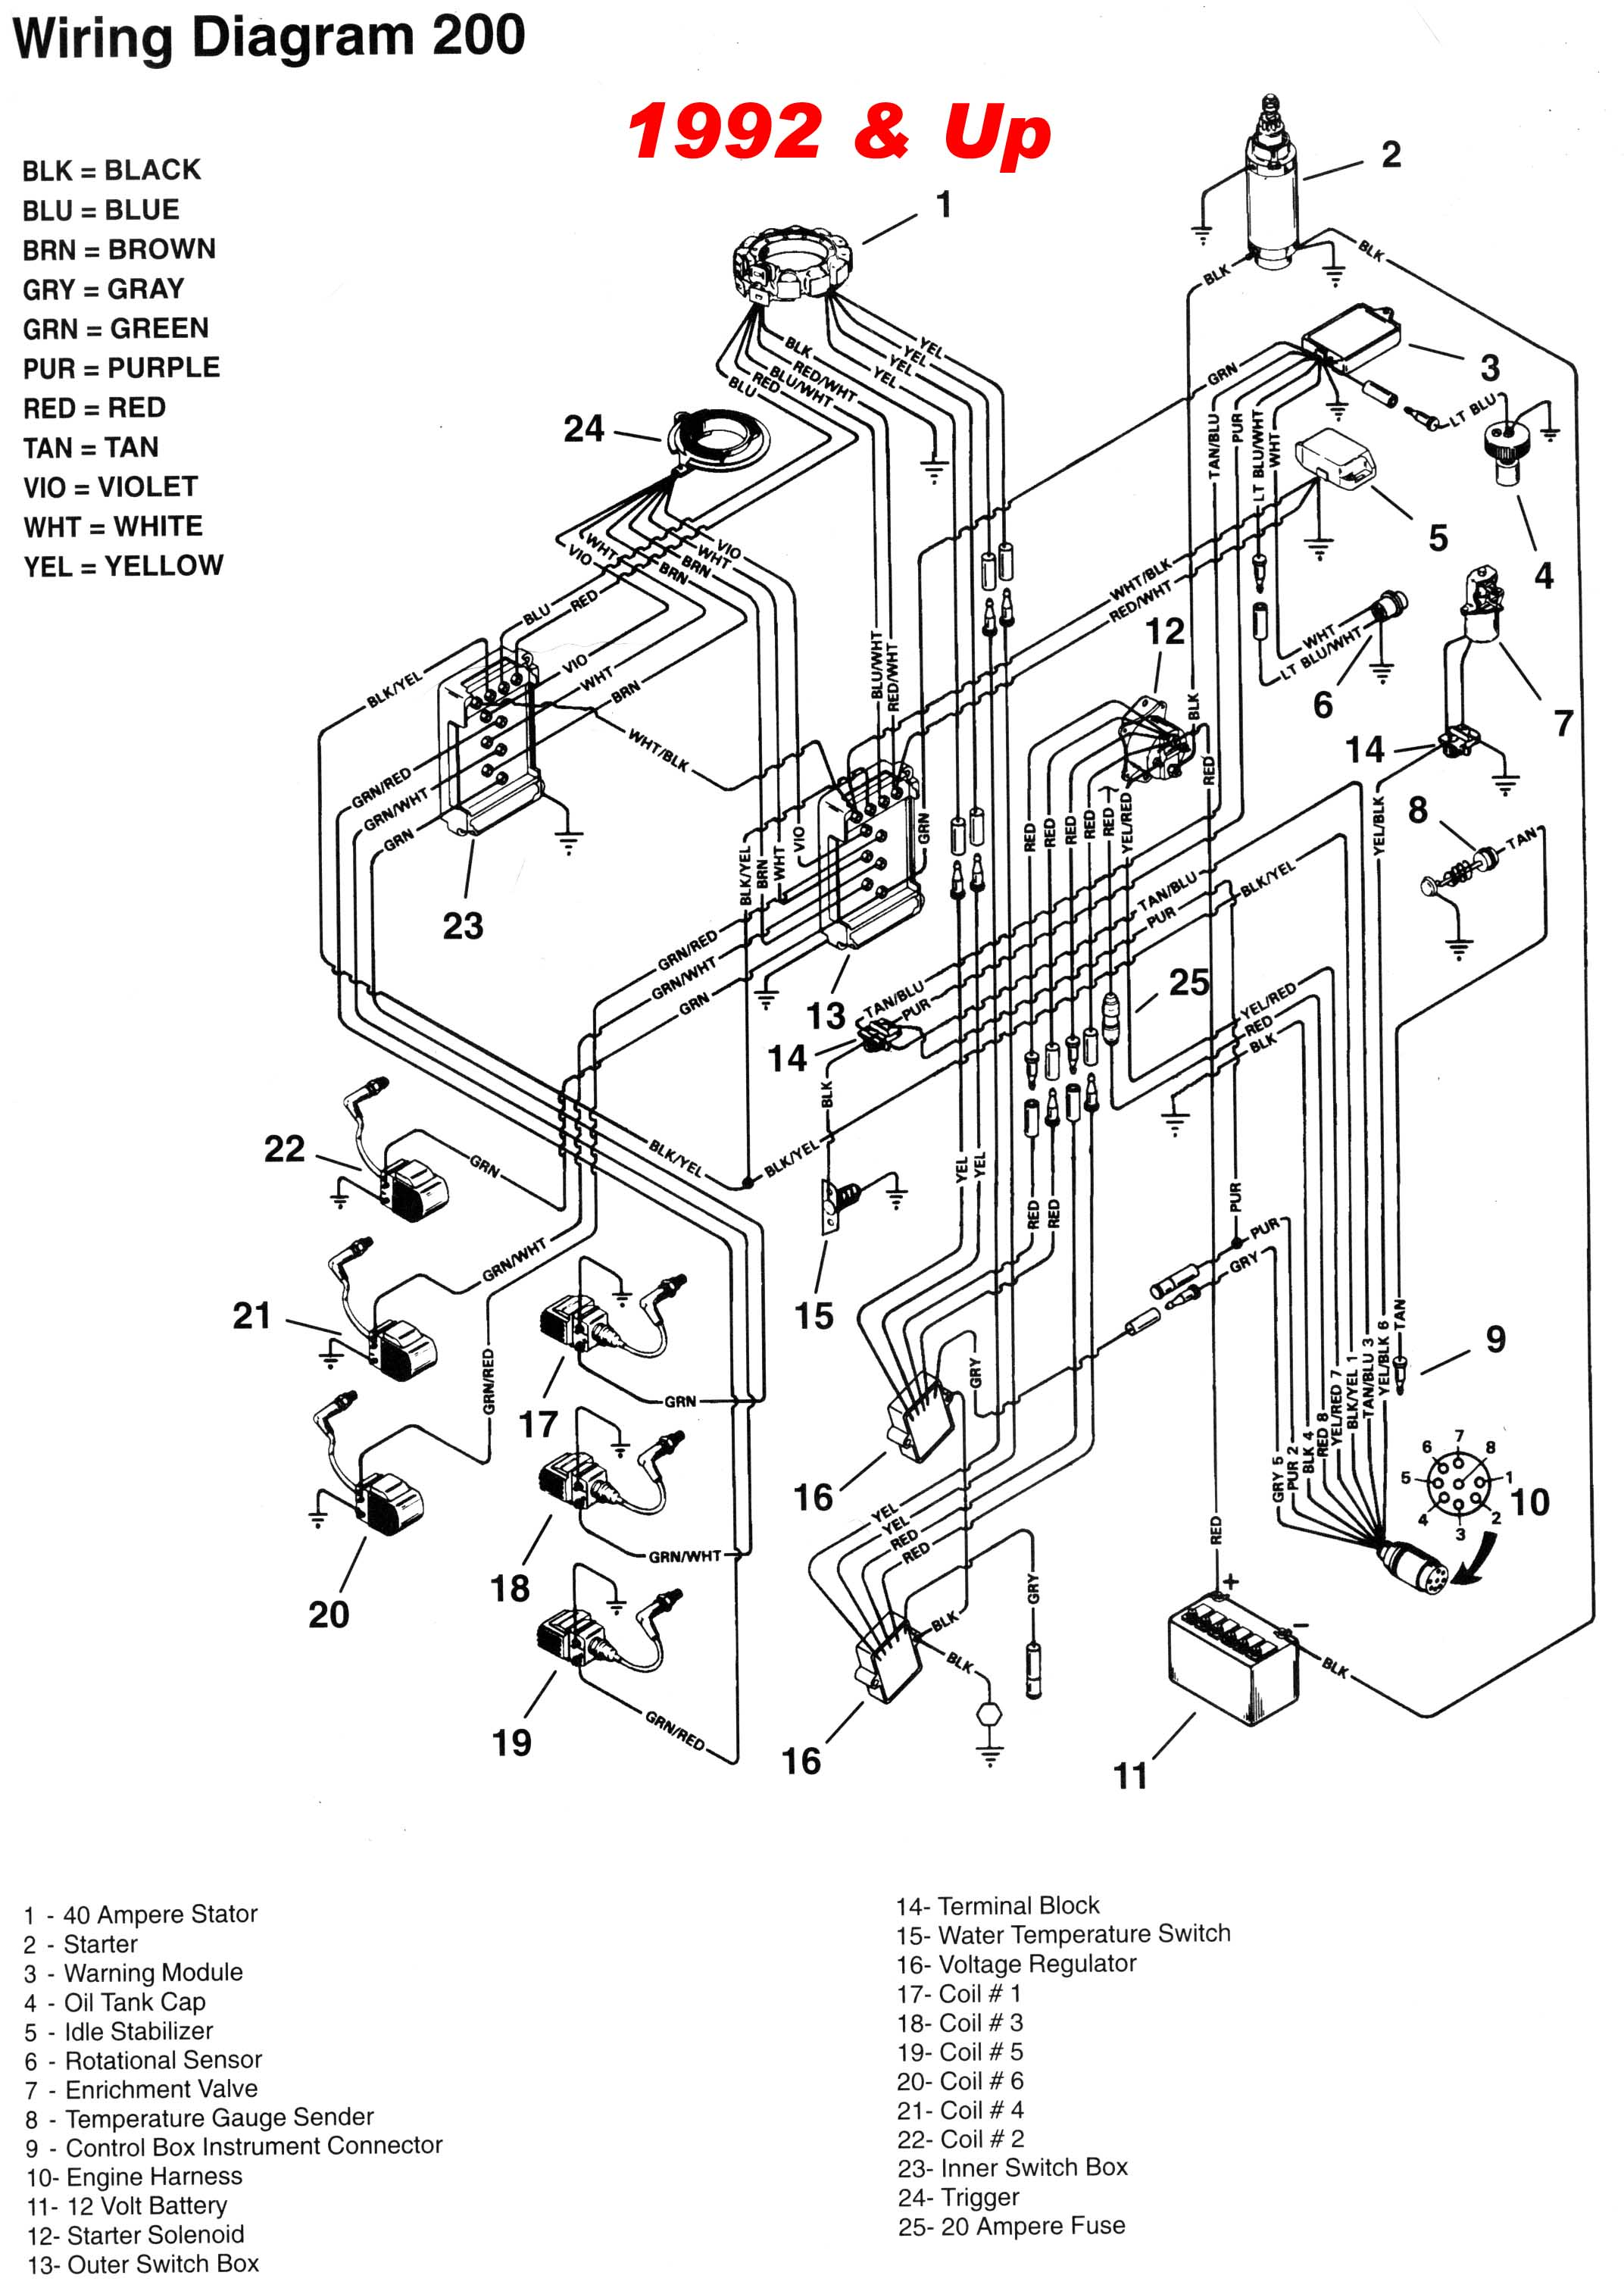 mercury_92up_200_wiring mercury outboard 2 5 and 3 0l v6 and gearcase faq Mercury Outboard Tach Wiring Diagram at panicattacktreatment.co